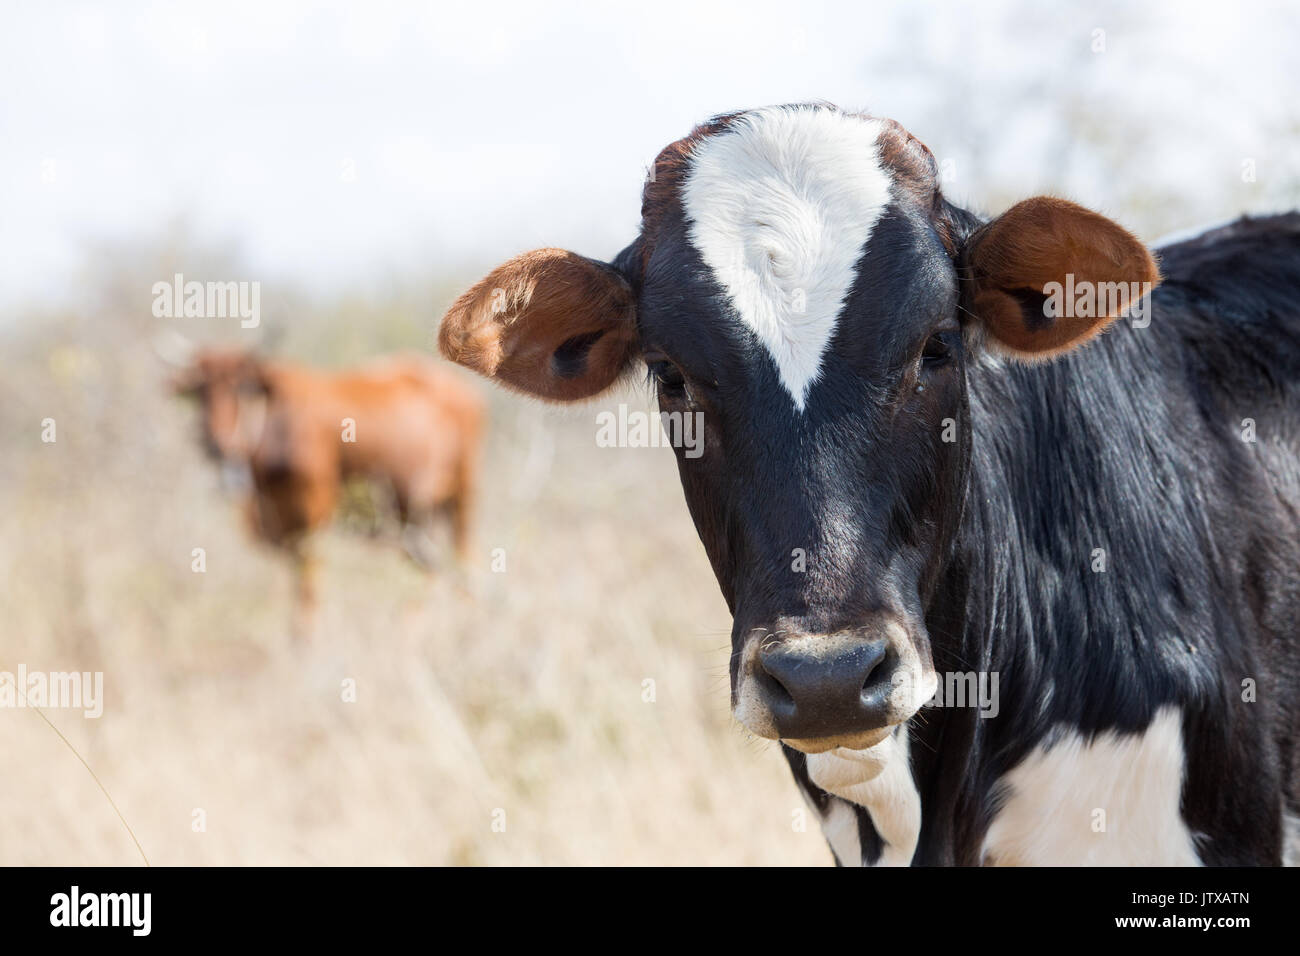 Indigenous calf with attractive white and black markings in the Mpumalanga lowveld - Stock Image